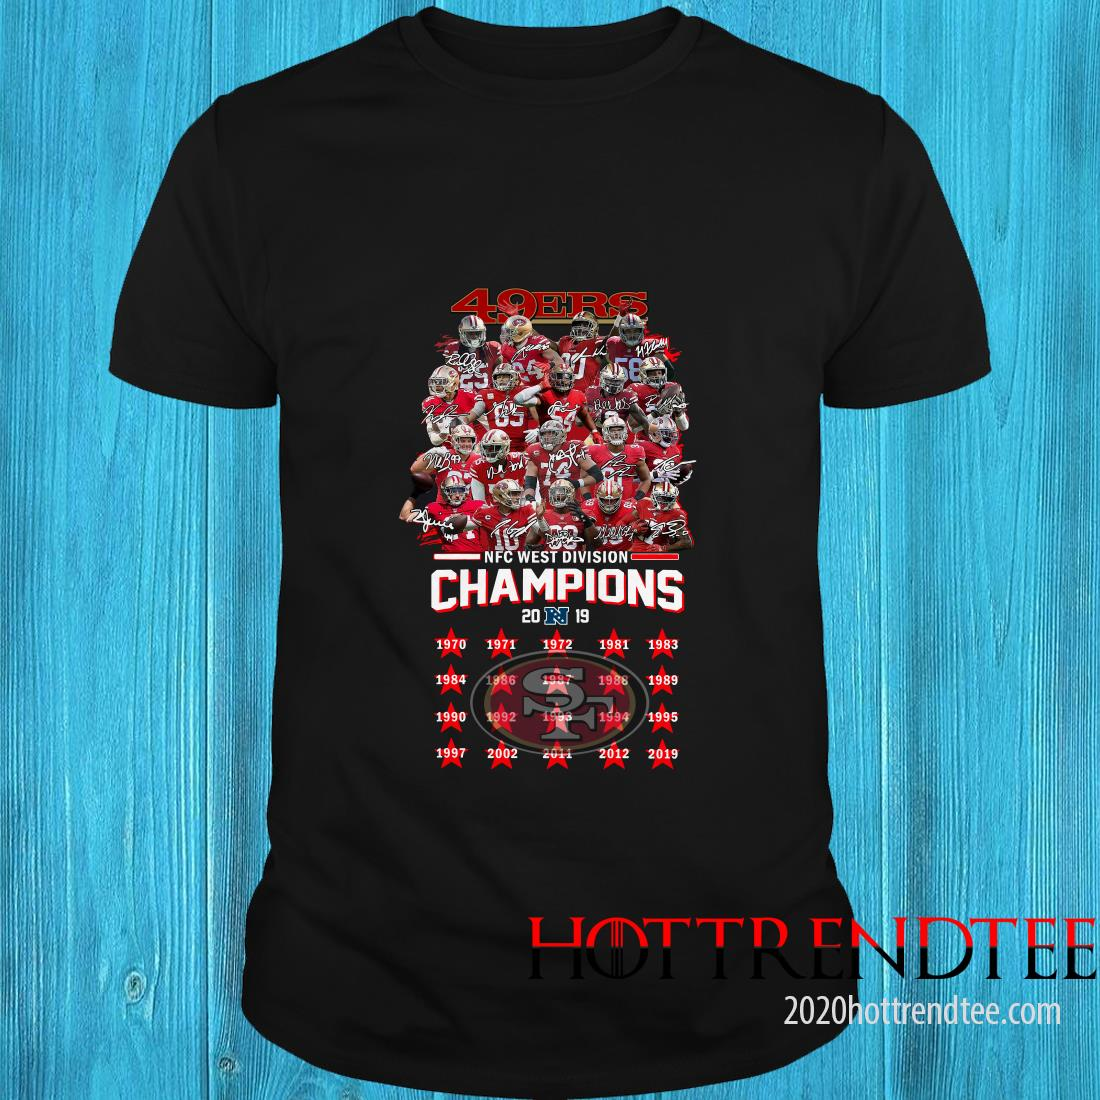 49ers nfc west champions 2020